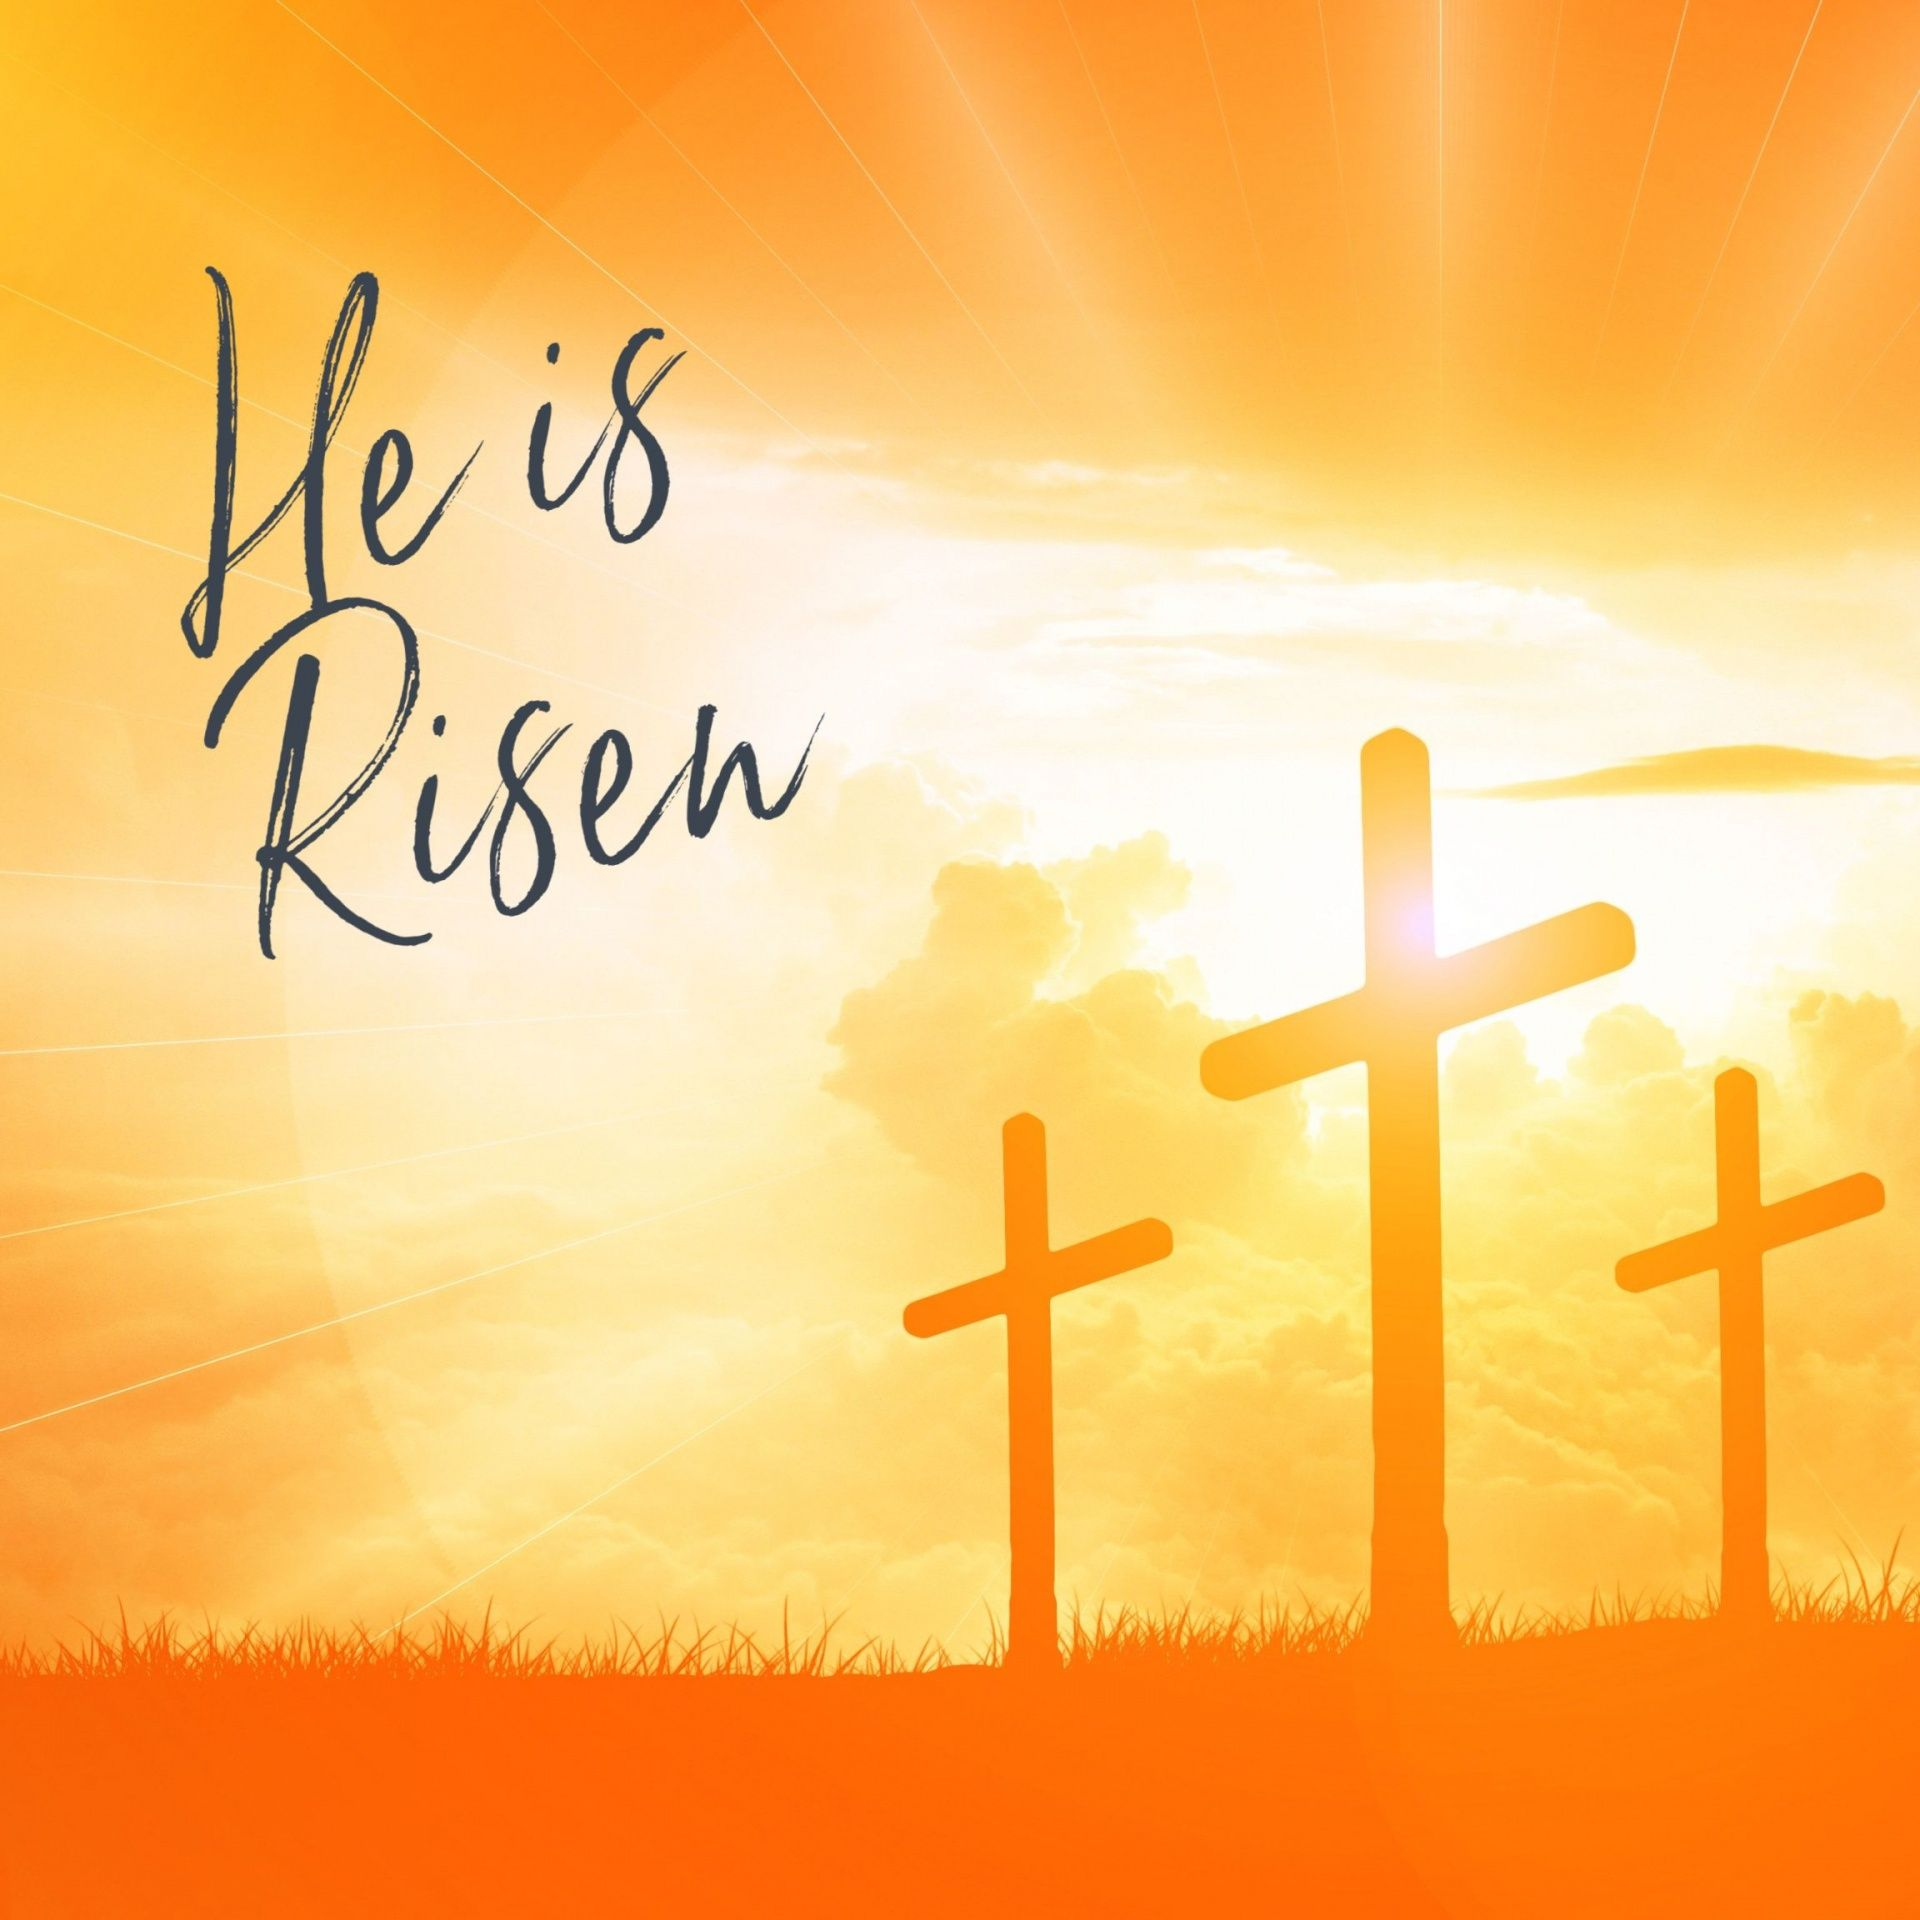 He Is Risen Easter Free Stock Photo - Public Domain Pictures in ...